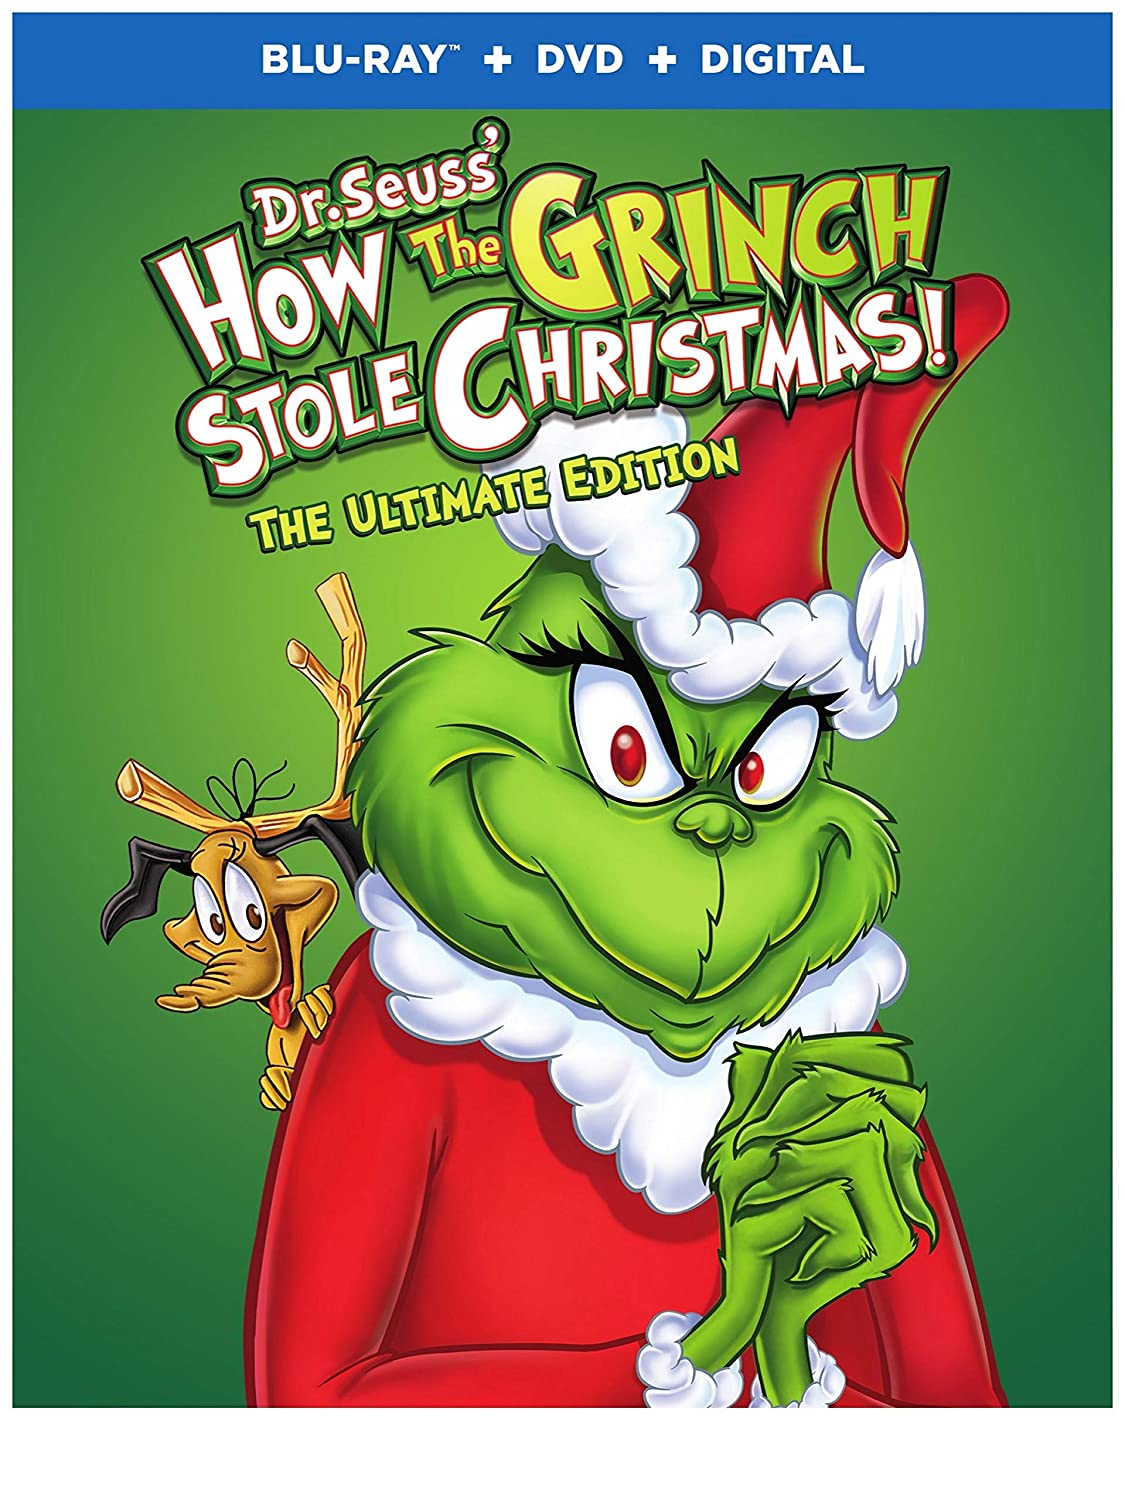 When Does How The Grinch Stole Christmas Come Out 2020 To Dvd